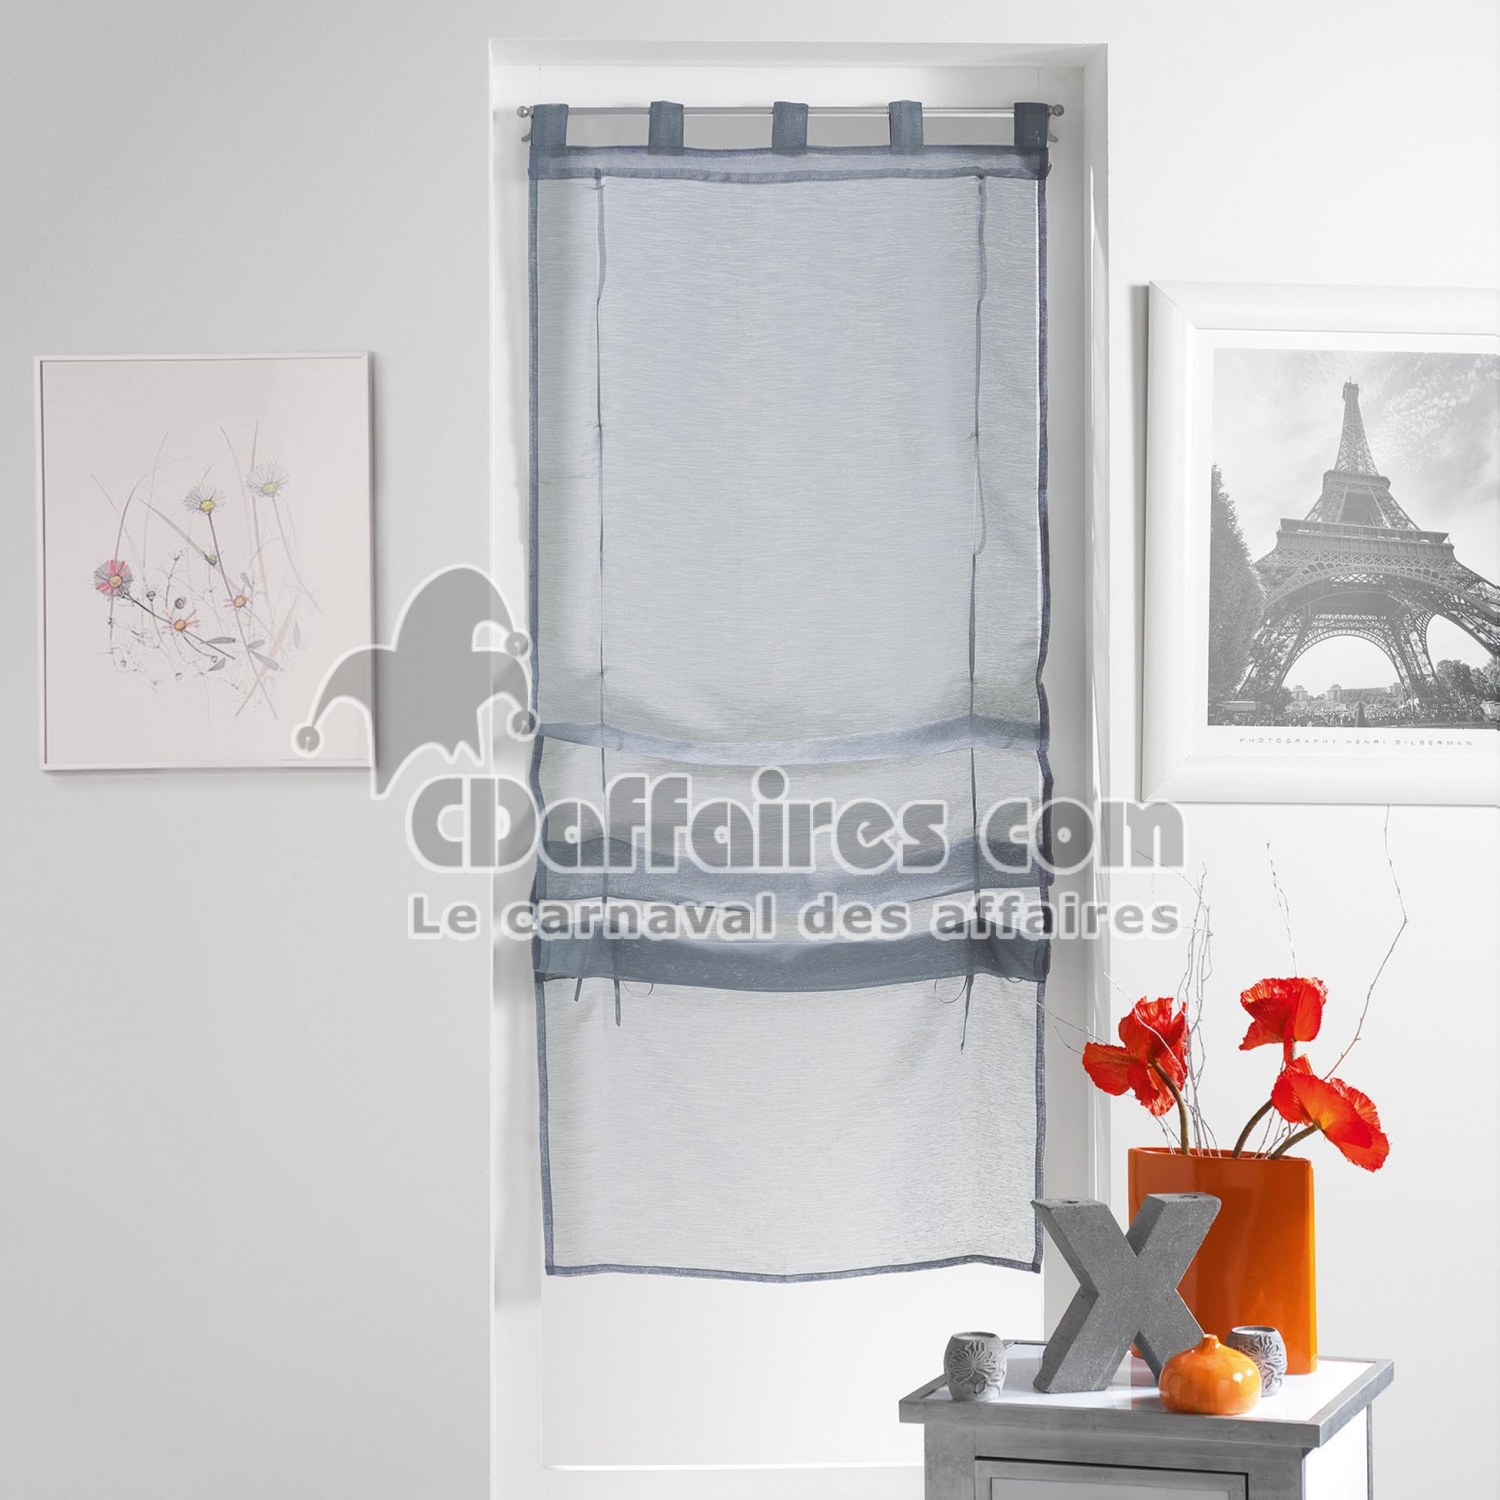 store droit a passants 45 x 180 cm voile sable lissea gris cdaffaires. Black Bedroom Furniture Sets. Home Design Ideas